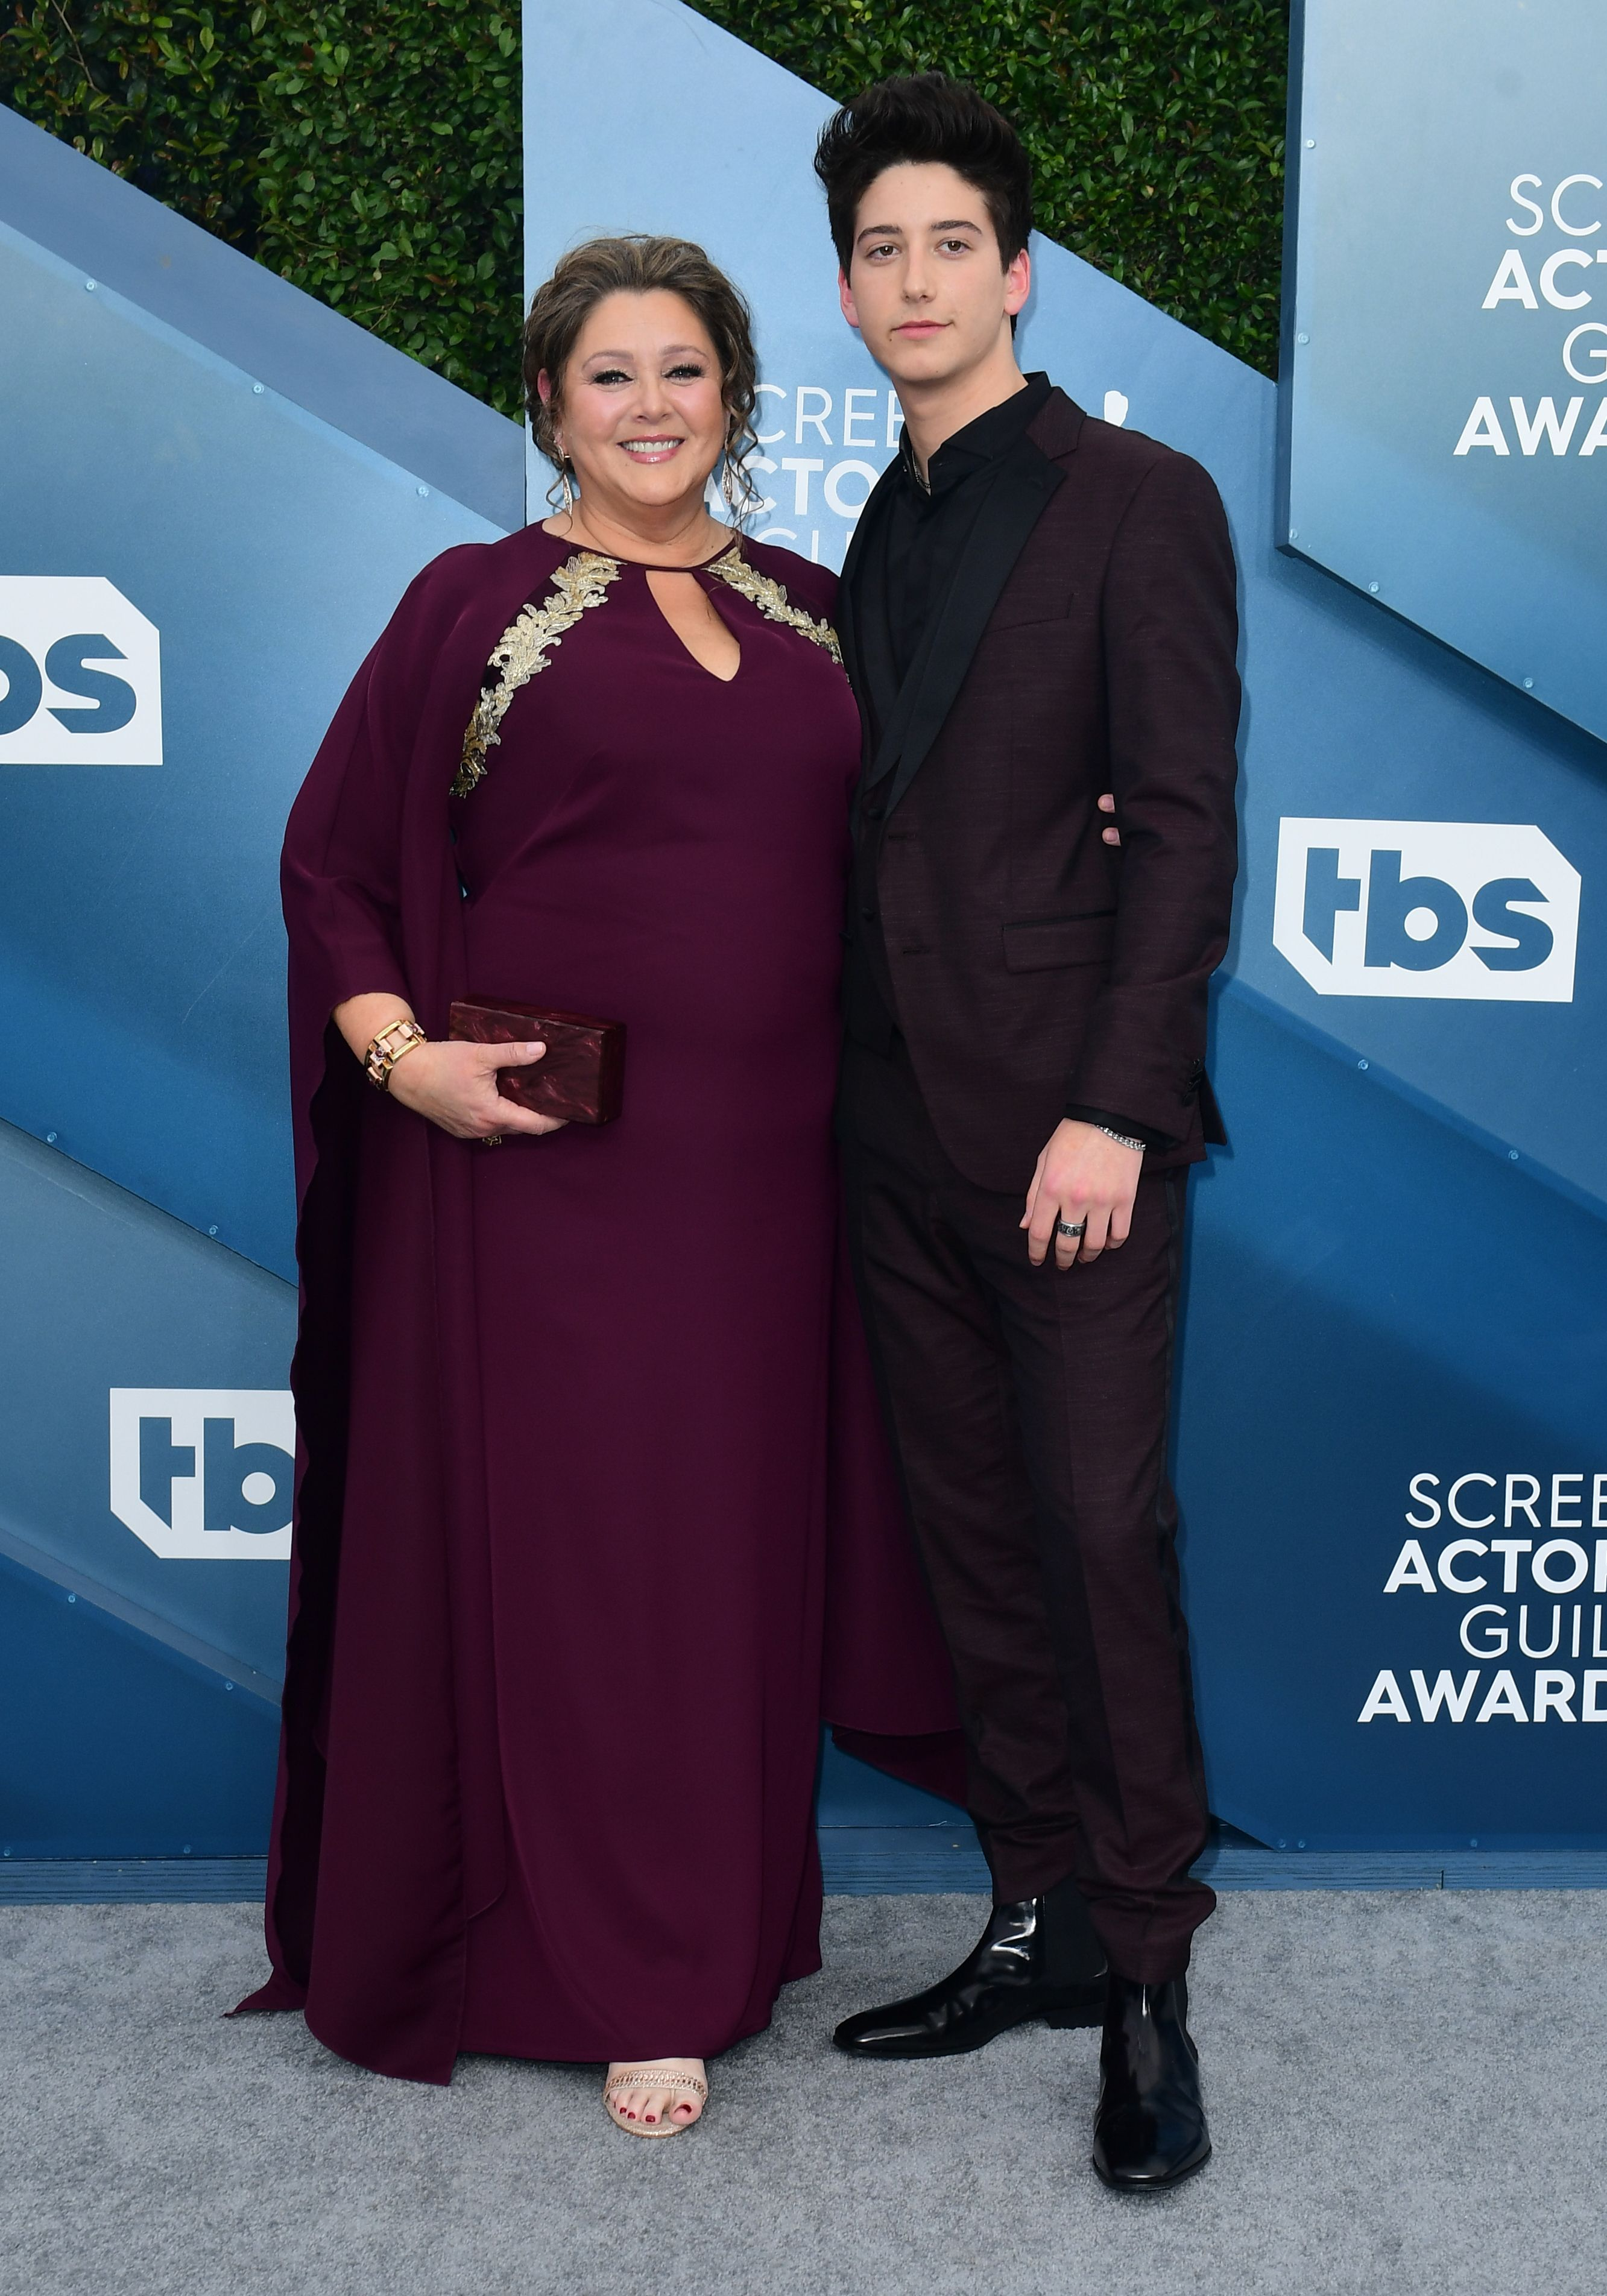 Actress Camryn Manheim and her son Milo arrive for the 26th Annual Screen Actors Guild Awards at the Shrine Auditorium in Los Angeles on January 19, 2020. (Photo by FREDERIC J. BROWN / AFP) (Photo by FREDERIC J. BROWN/AFP via Getty Images)